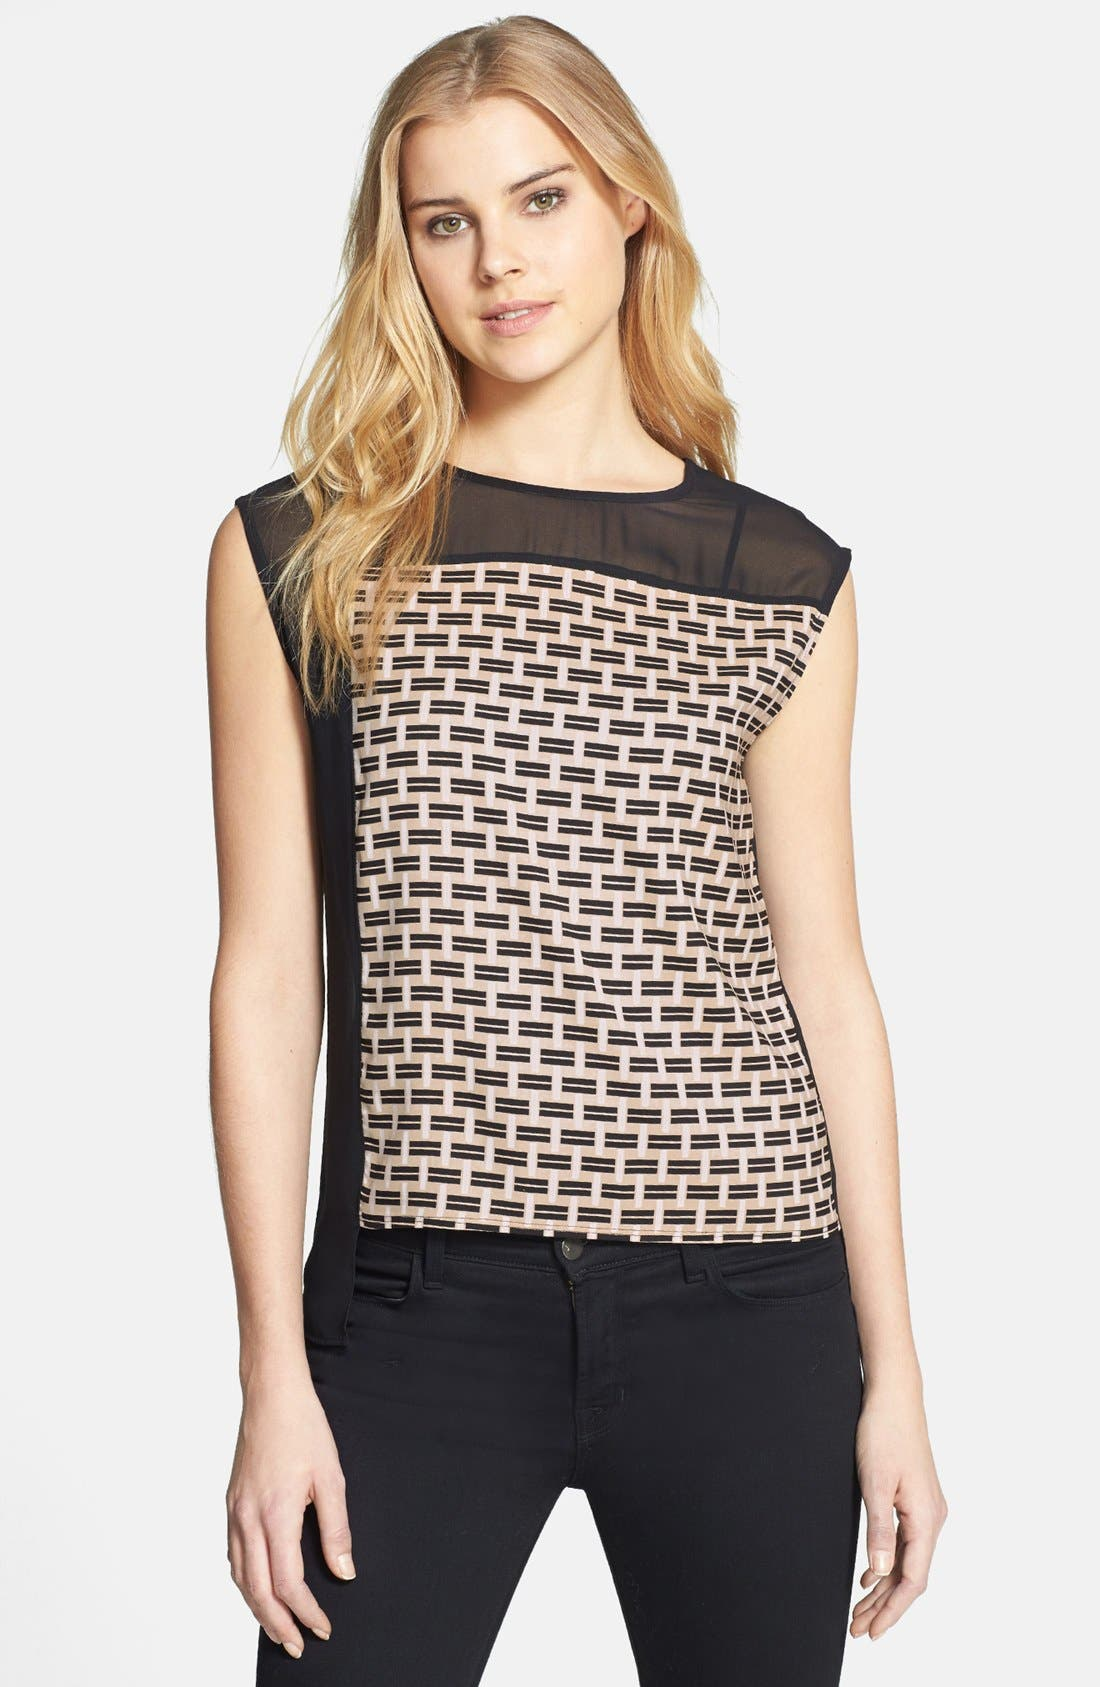 Main Image - Vince Camuto 'Graphic Basket' Colorblock Blouse